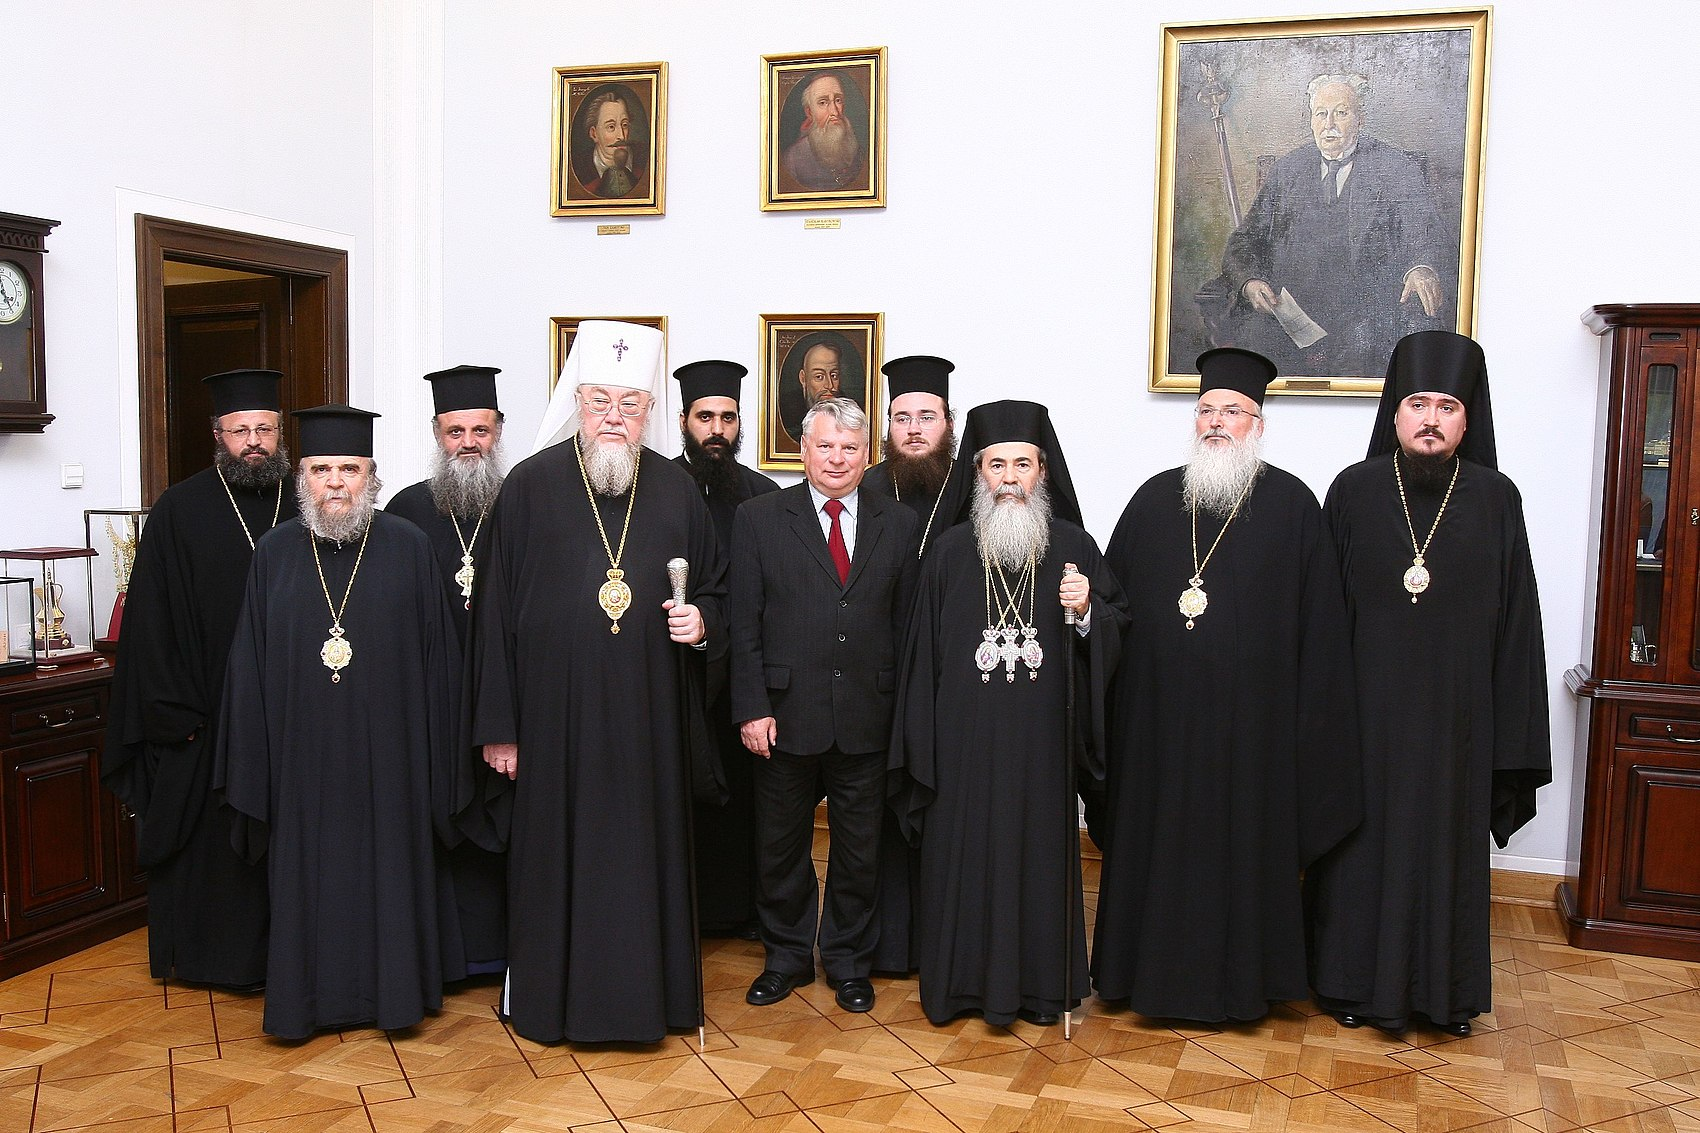 Patriarch Theophilos III of Jerusalem Senate of Poland 03.JPG